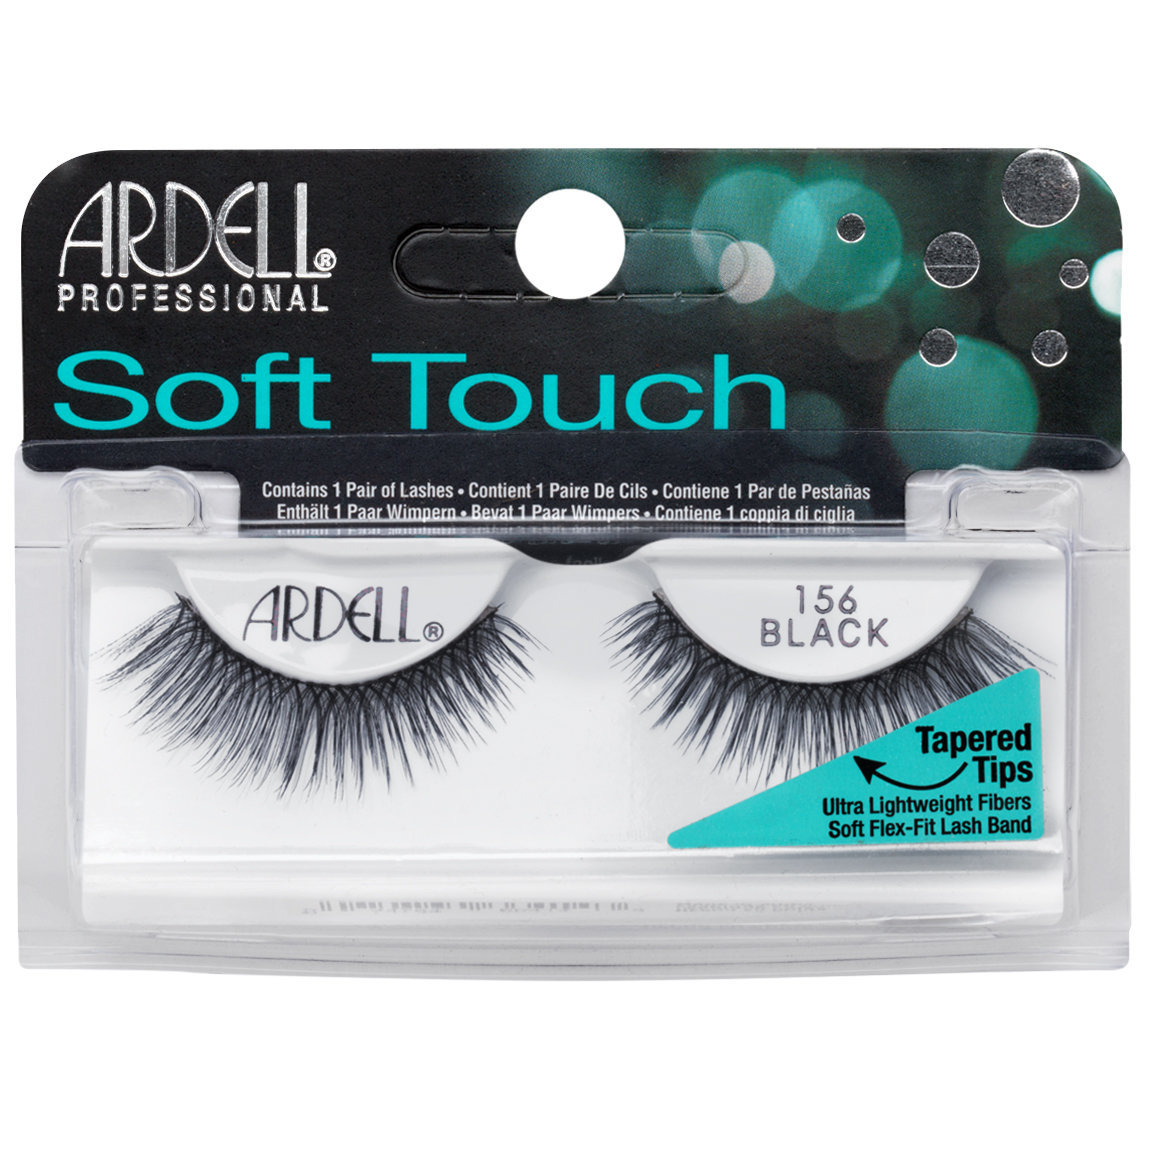 Ardell Soft Touch Lashes 156 Black alternative view 1.